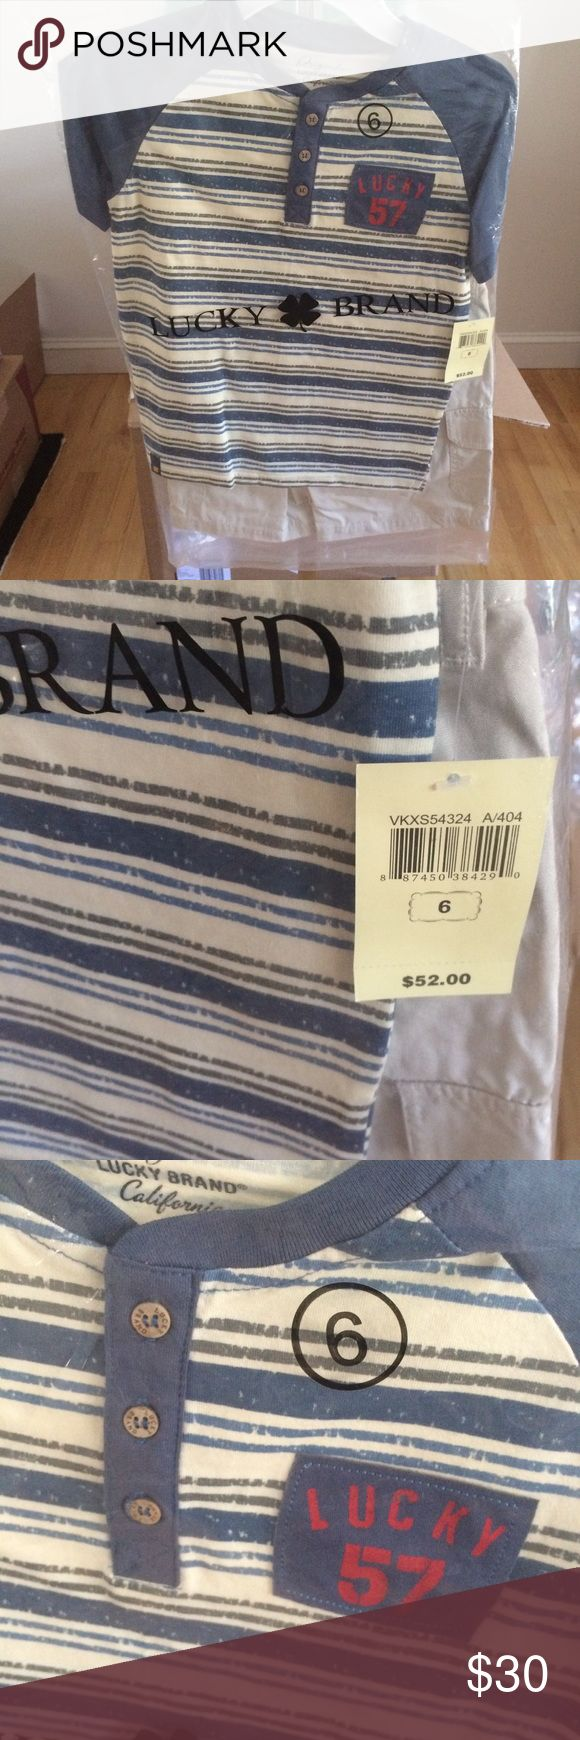 Lucky Brand Boys Tee and Khakis Set, 6 Lucky Brand Boys Tee and Khakis Set. Size 6. Boutique items are direct from manufacturer, meaning they are being sold retail for the first time here. Please bundle for an additional 10% off MSRP! Lucky Brand Matching Sets